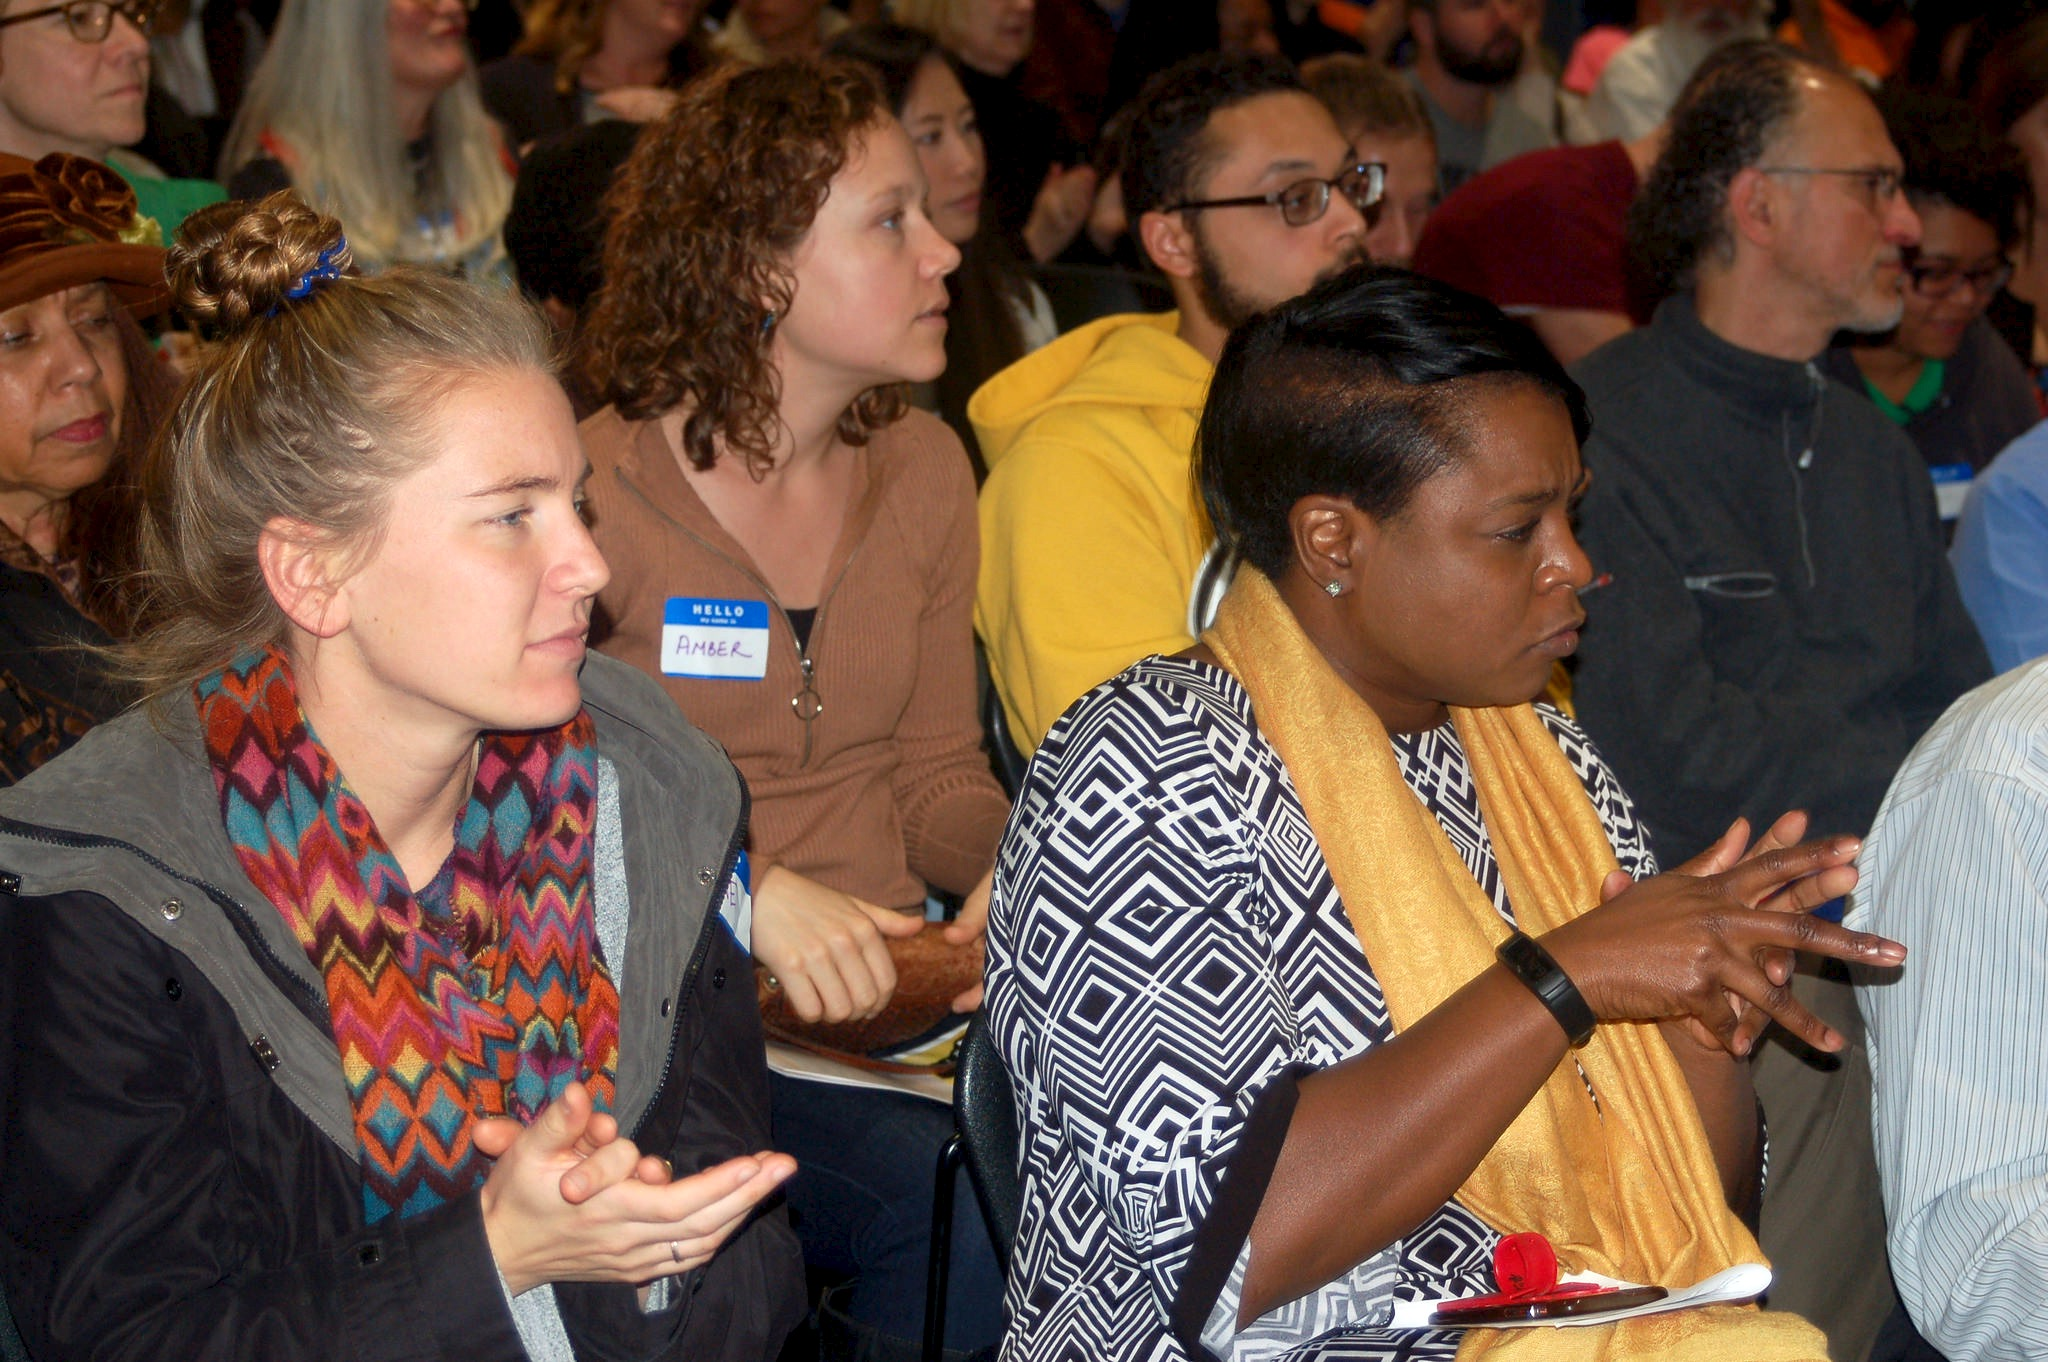 The audience listens attentively as panelists discuss the history of institutional racism in Milwaukee. (Photo by Naomi Waxman)